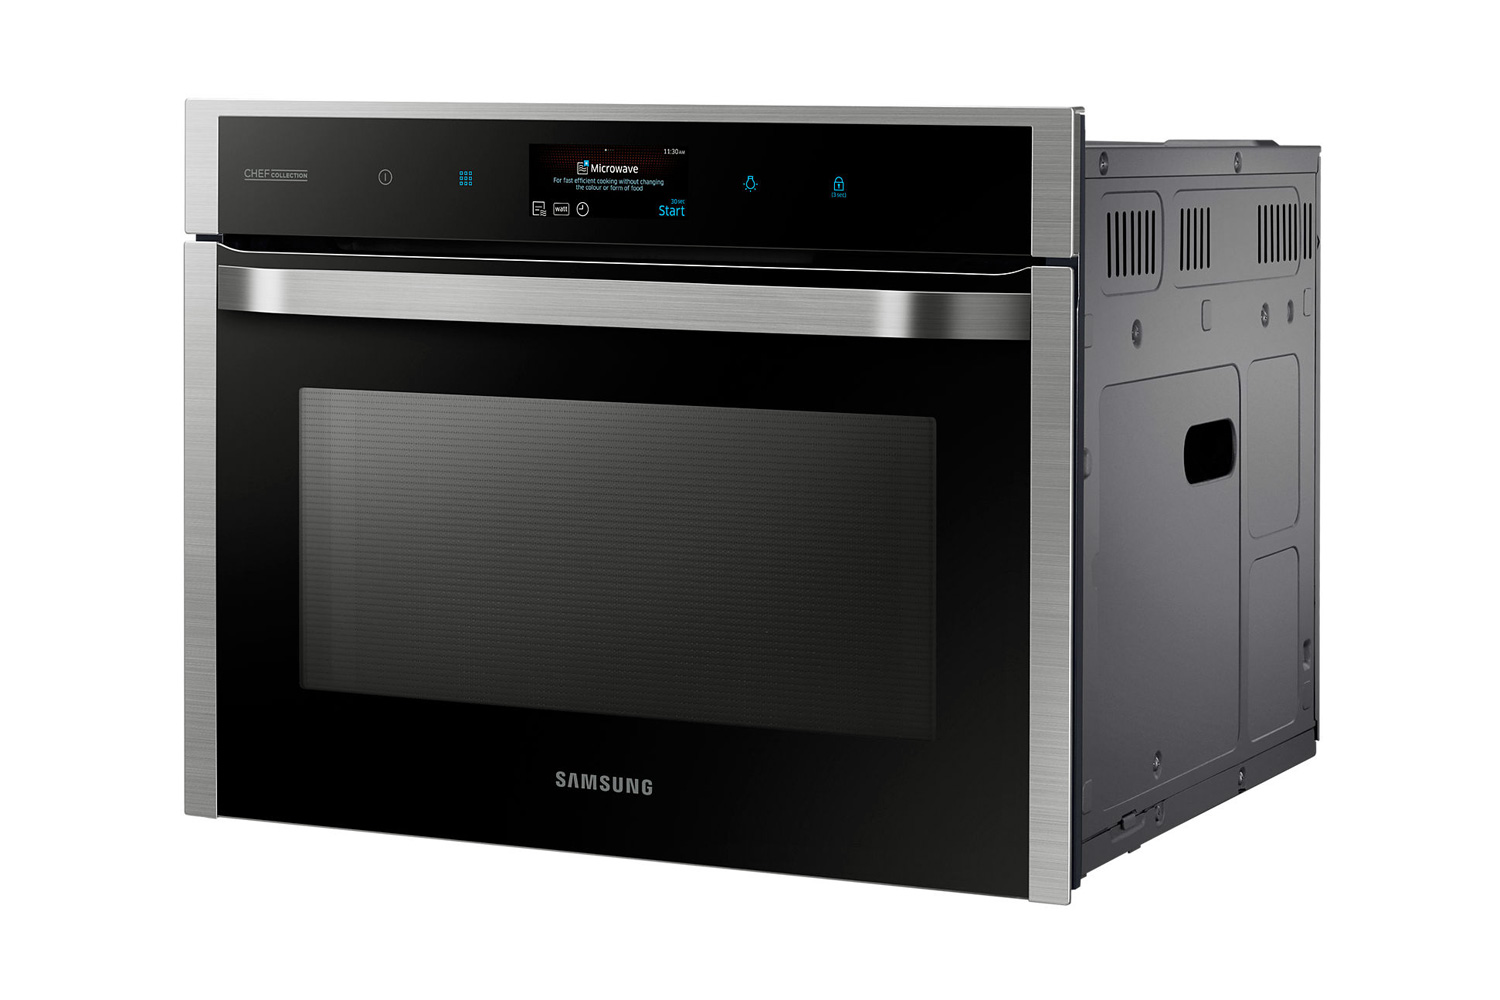 Built in ovens compact built in ovens for Small built in microwave oven